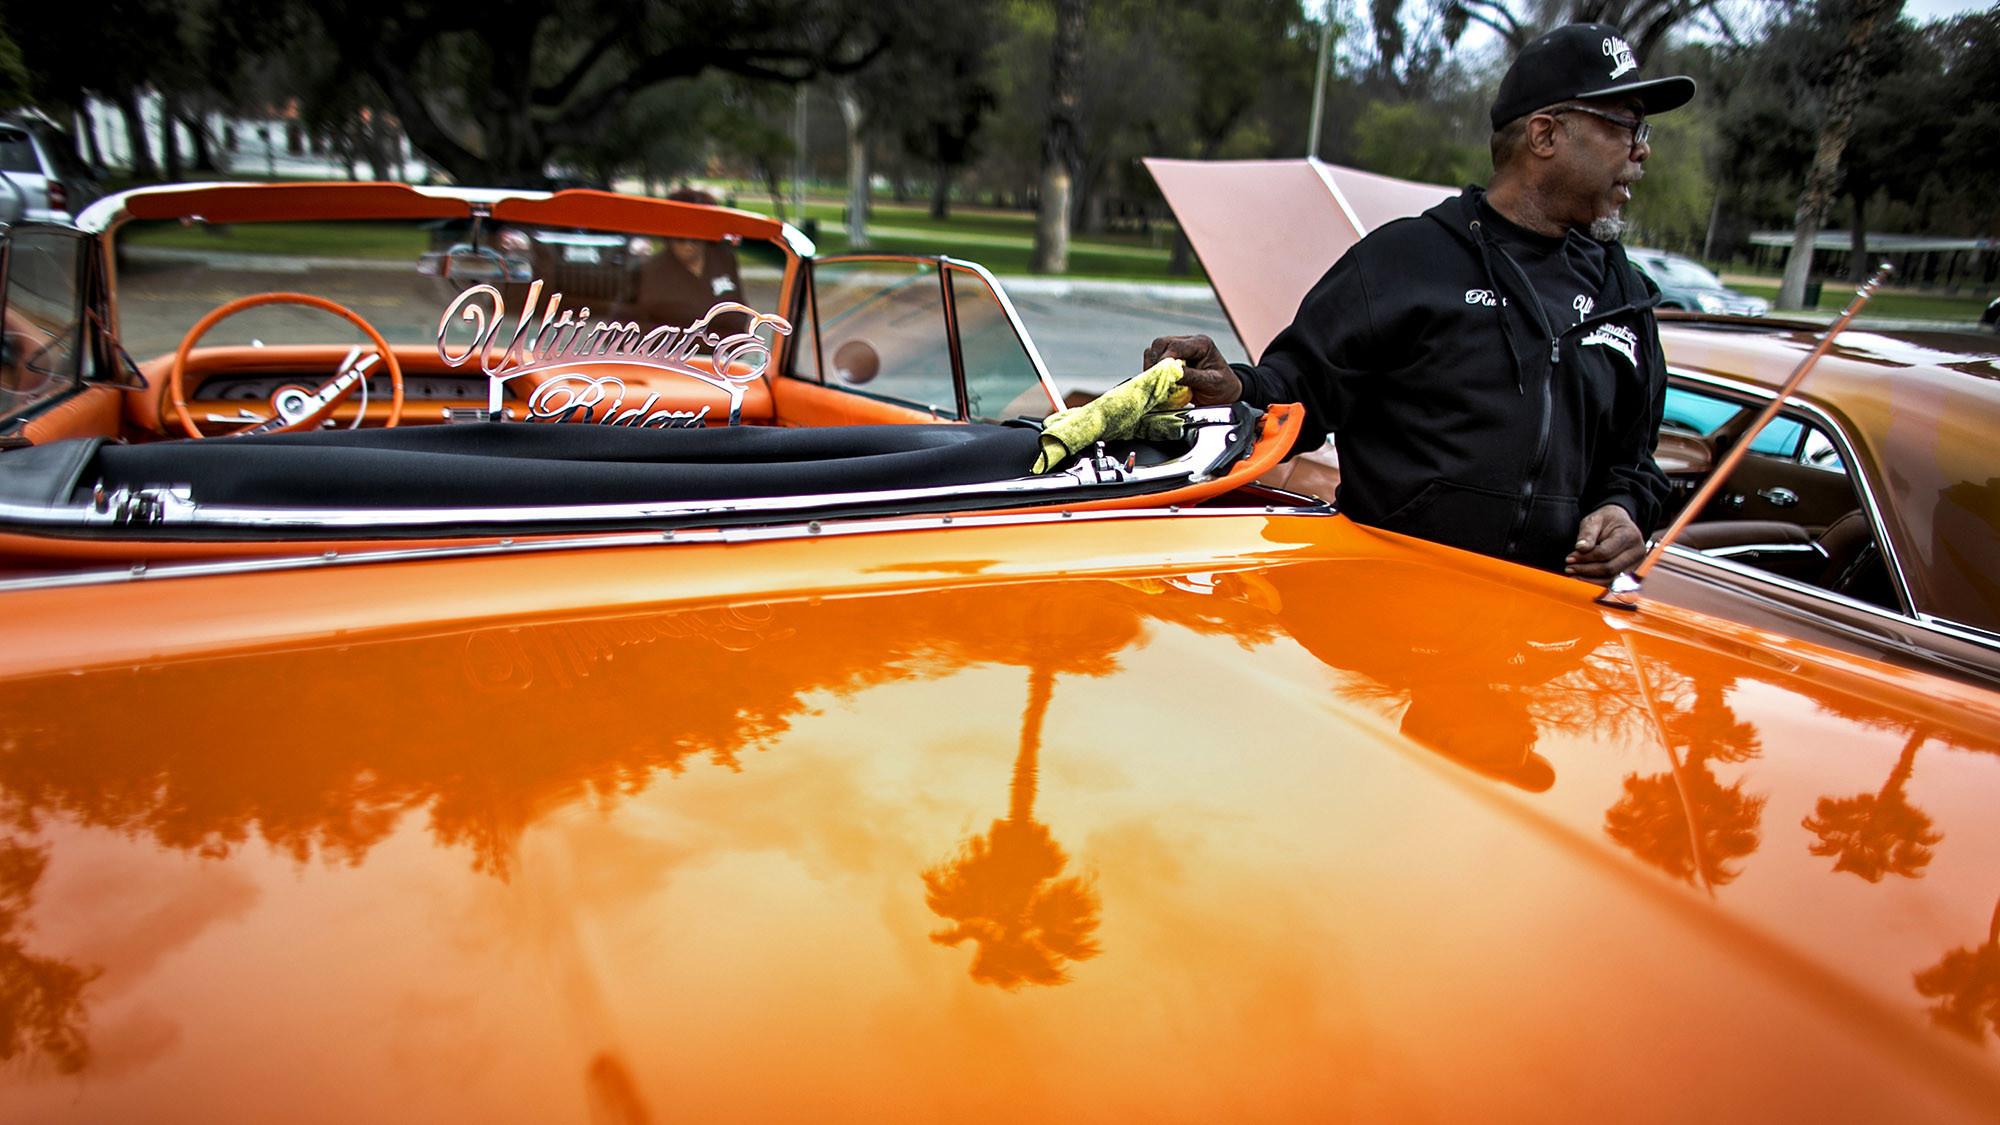 The art of lowriding, born in L.A.\'s Eastside, gets supercharged